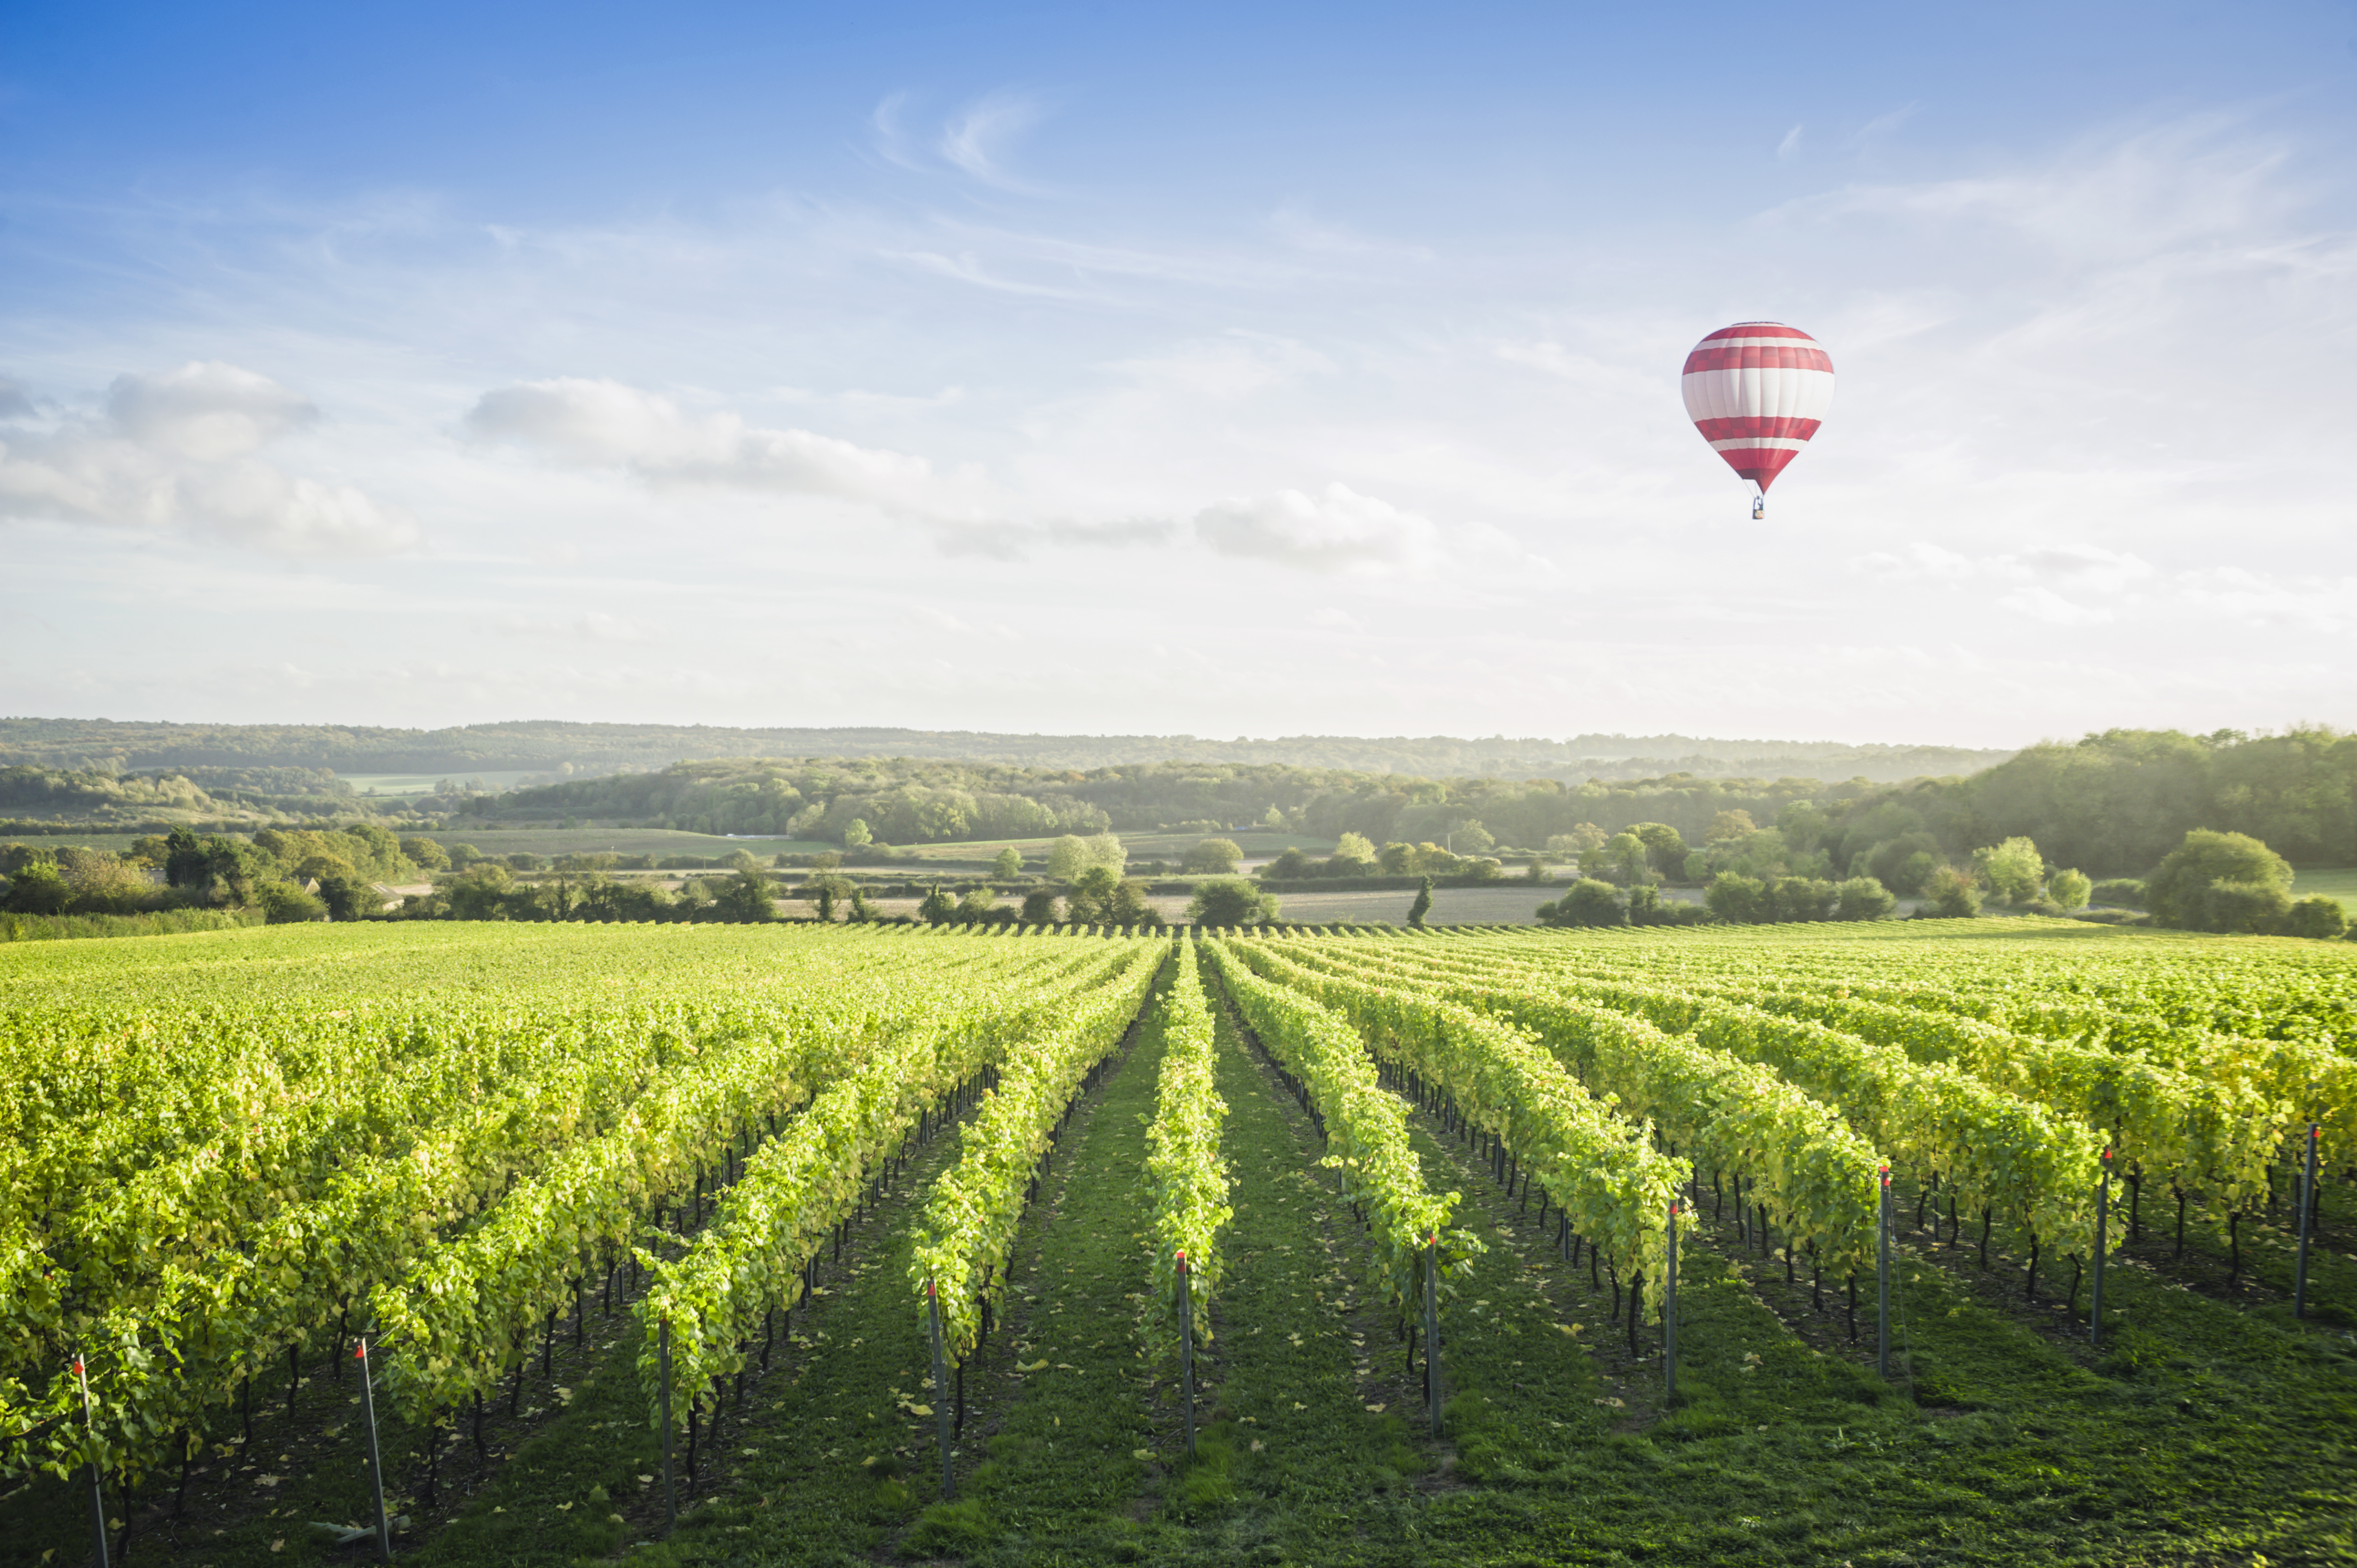 The Best Uk Vineyards For Sampling Some Delicious English Sparkling Wine photo